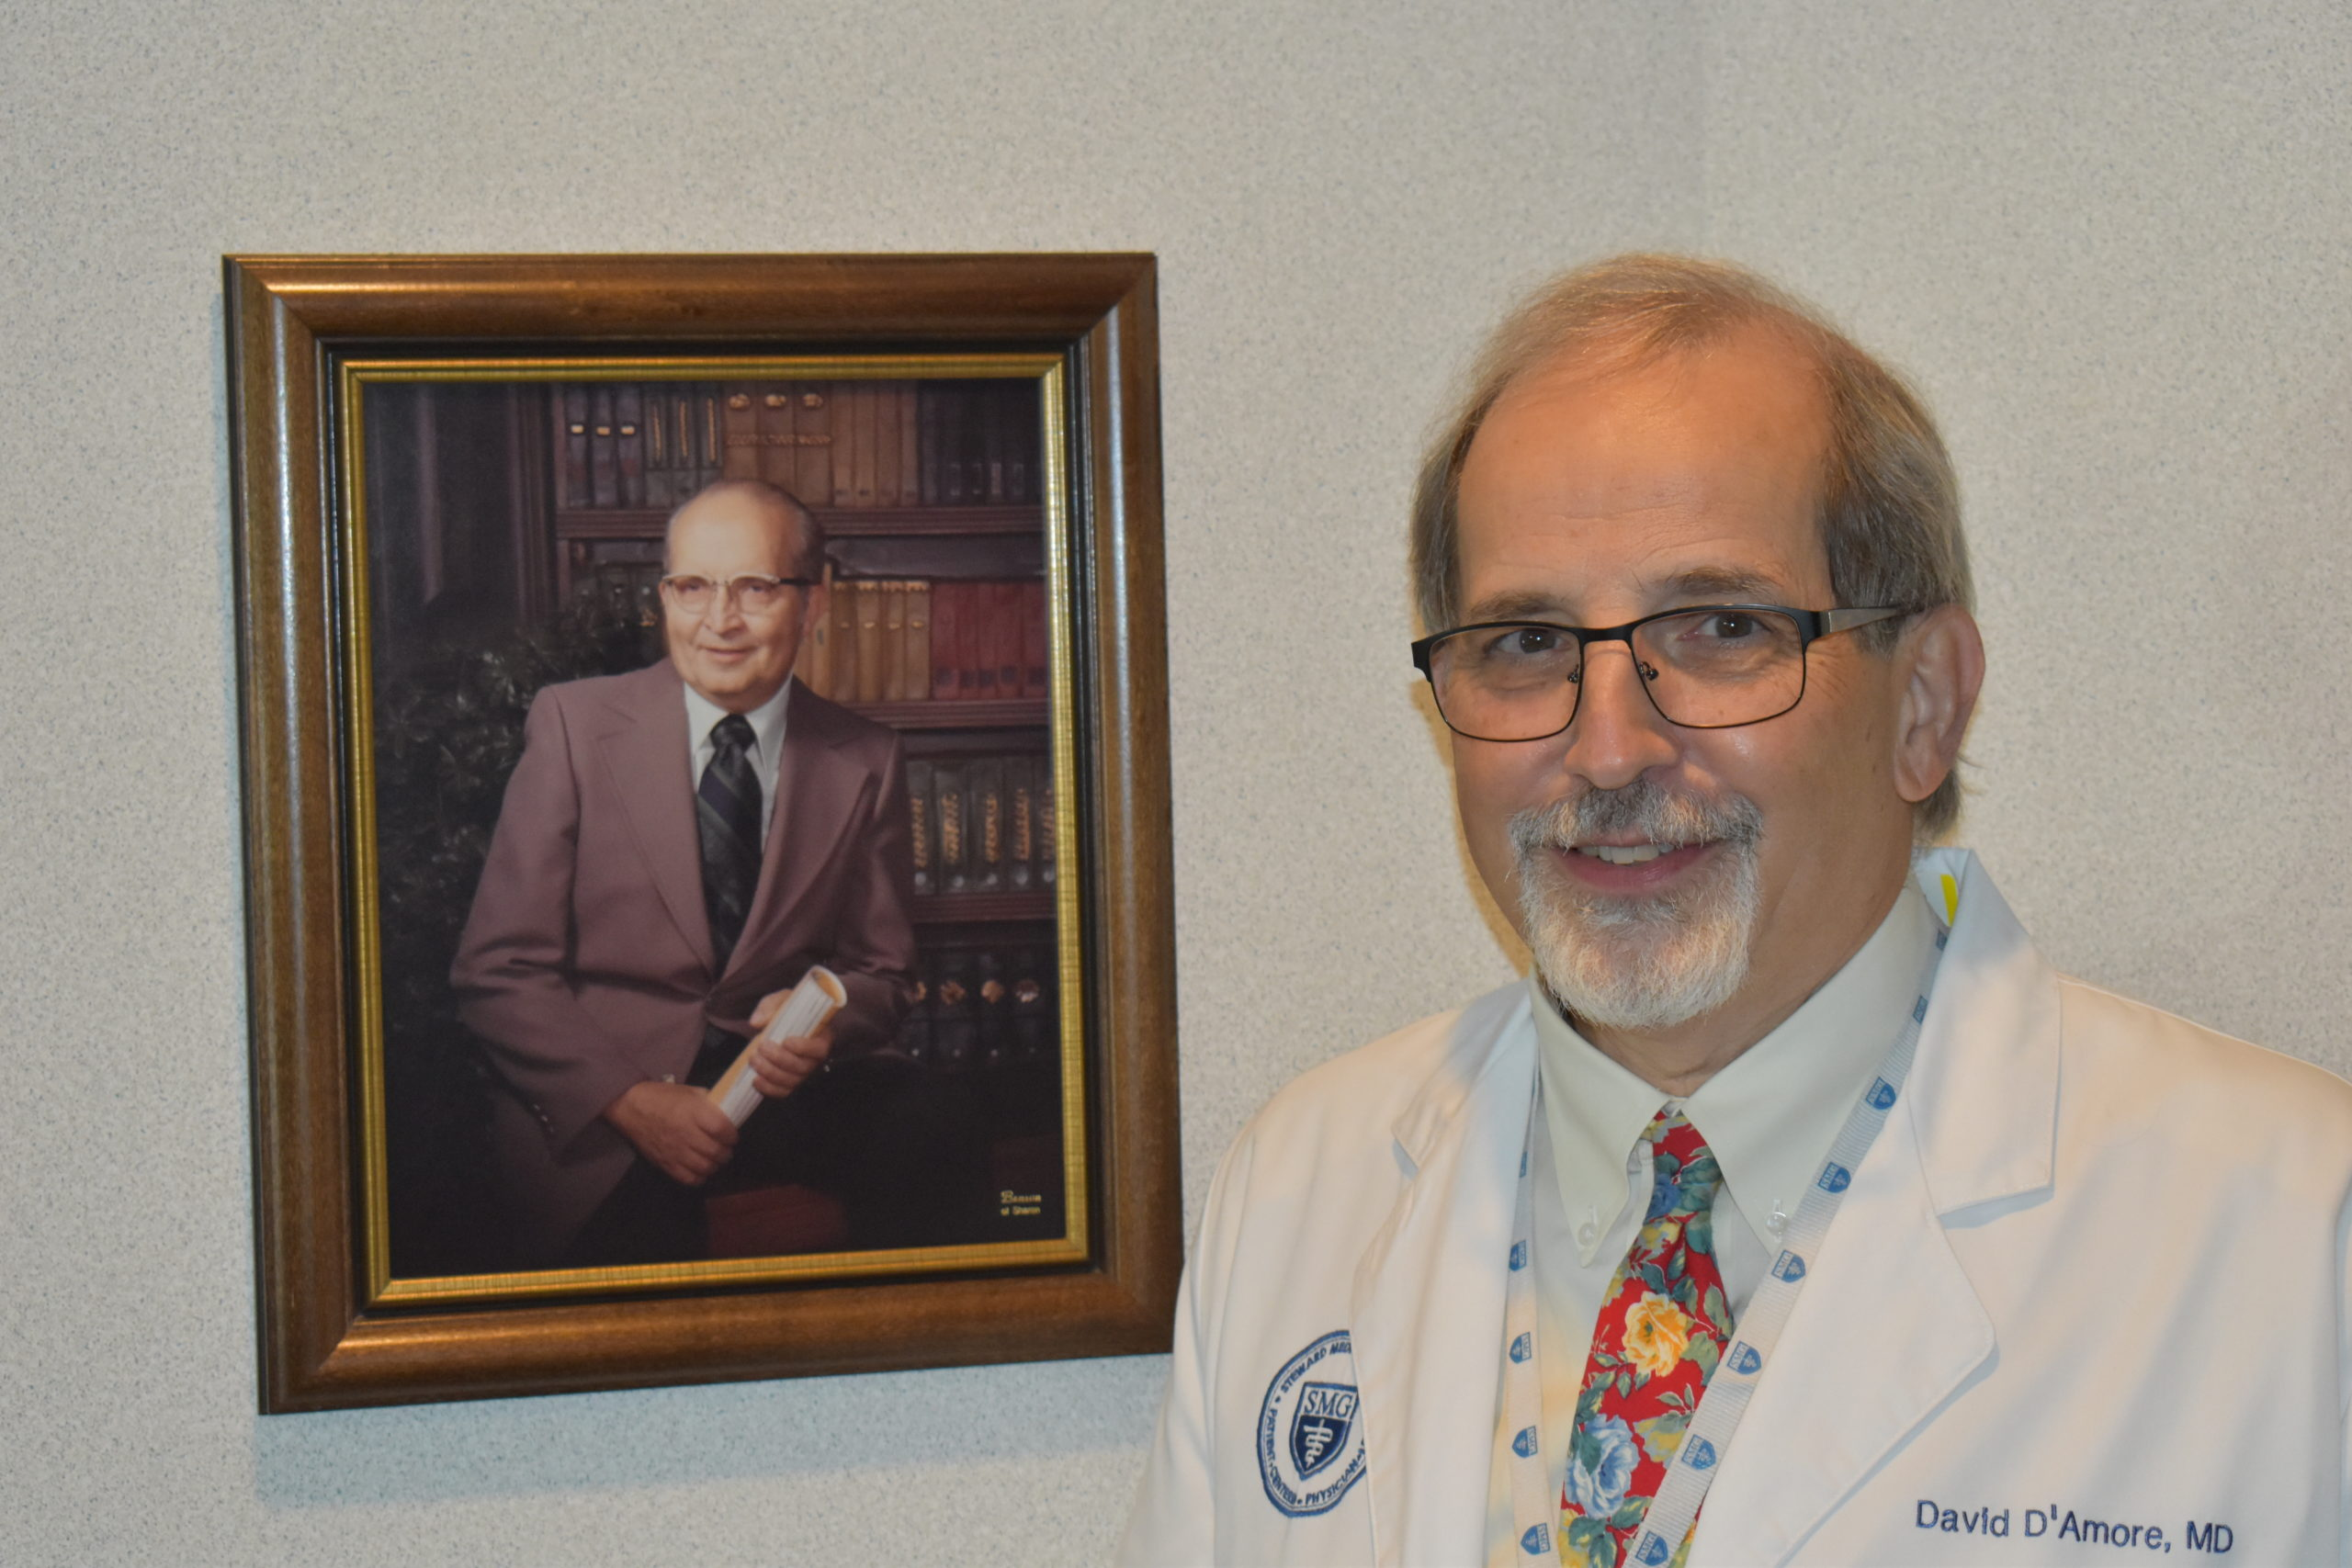 Dr. David D'Amore, who this year marked 40 years practicing medicine, stands with a photo of his father, Dr. Amanto D'Amore, who practiced for 61 years.